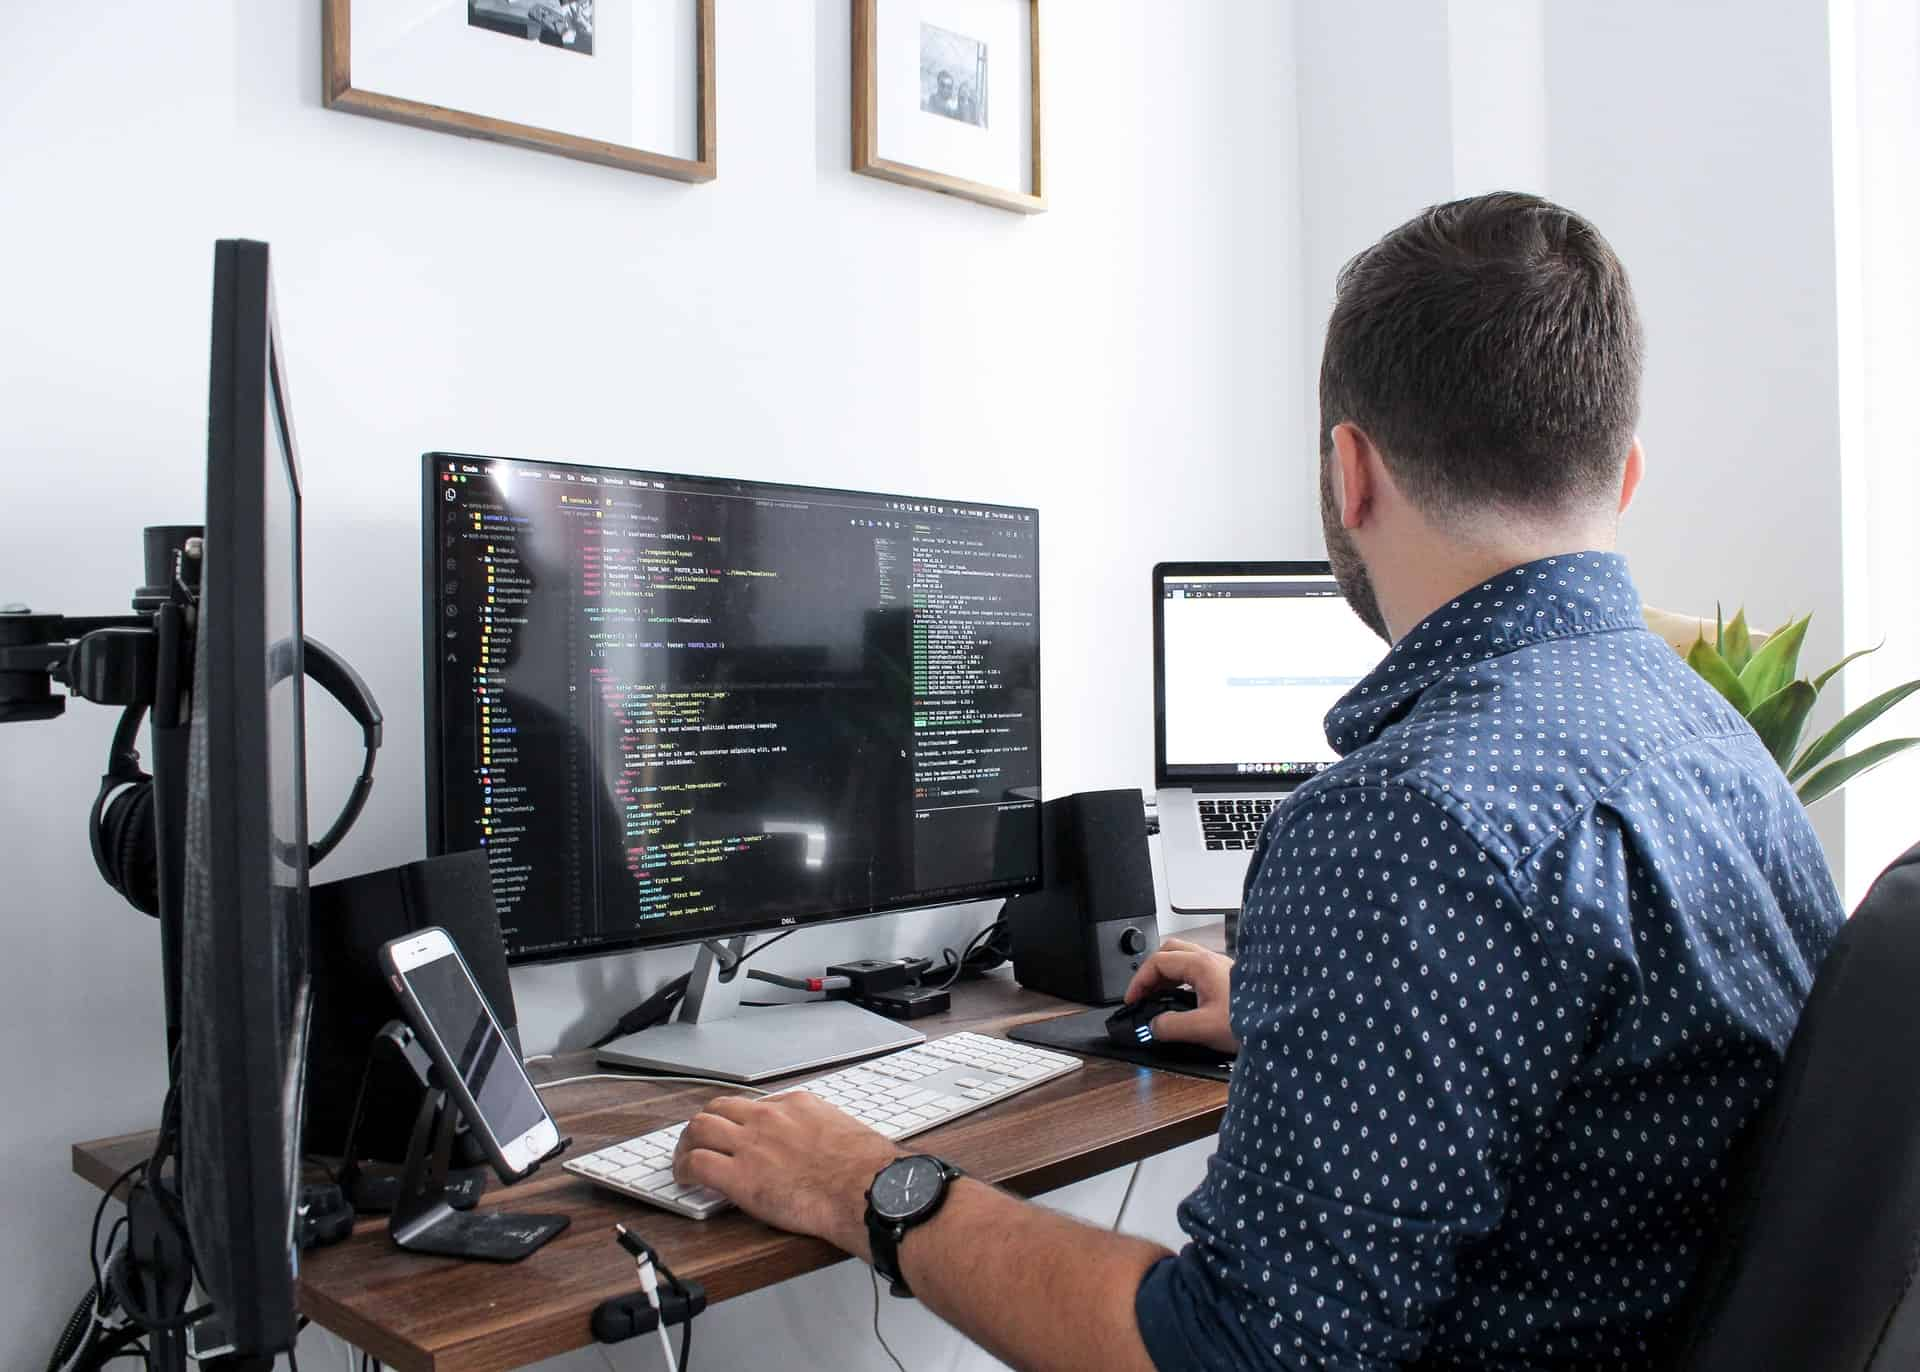 Man working with codes